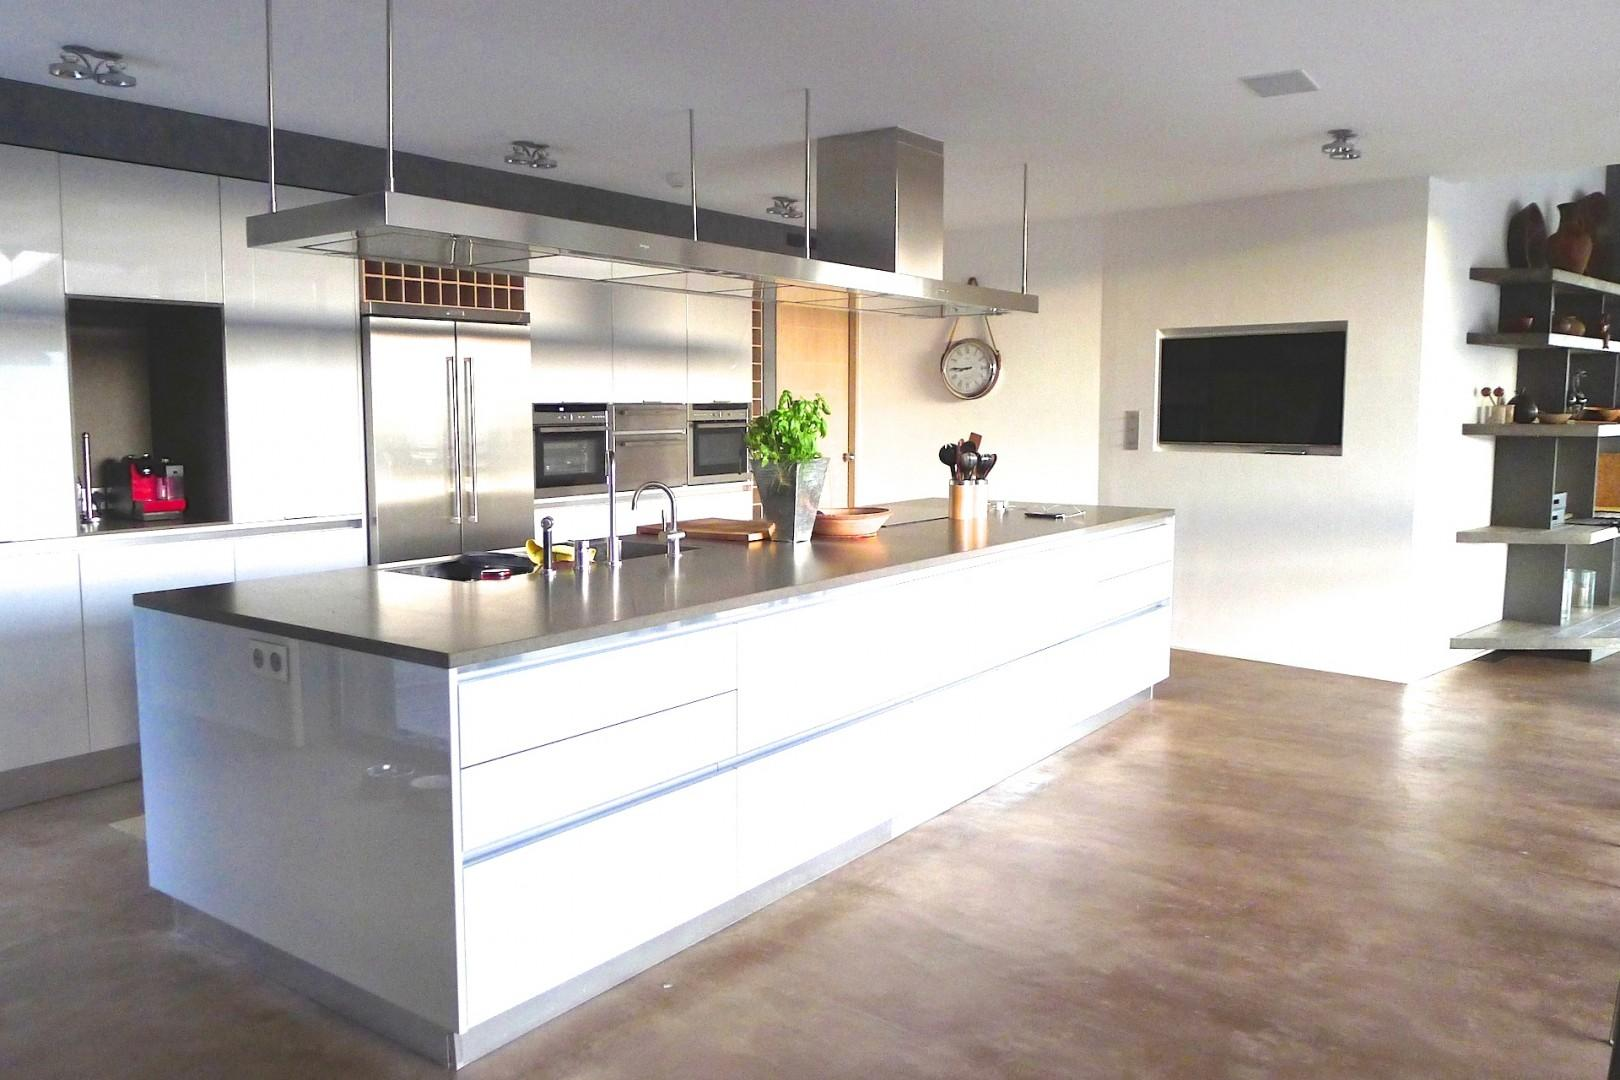 Two kitchen areas are fully equipped for all culinary needs